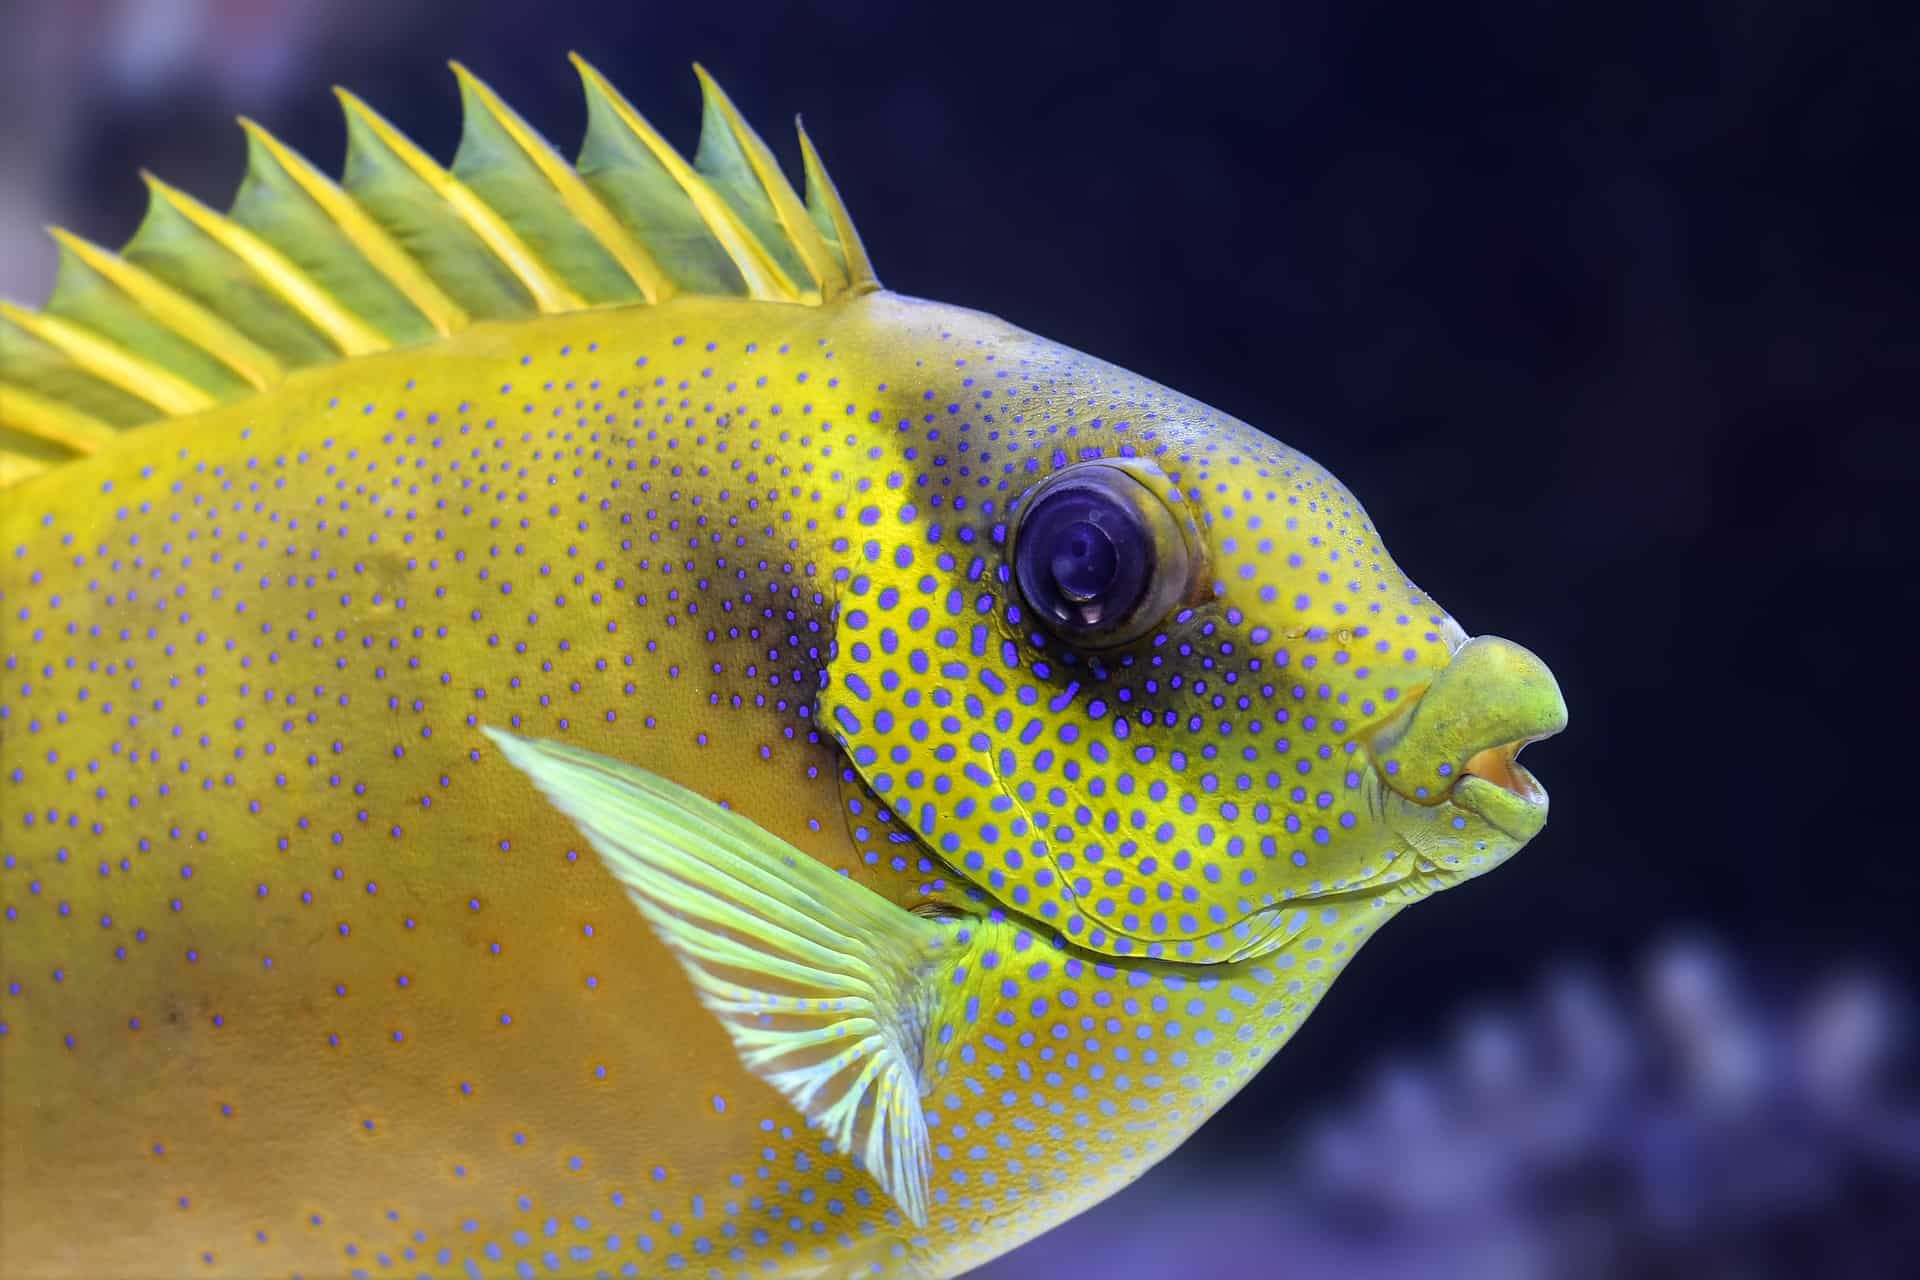 How To Care For Soft Corals In A Saltwater Aquarium?